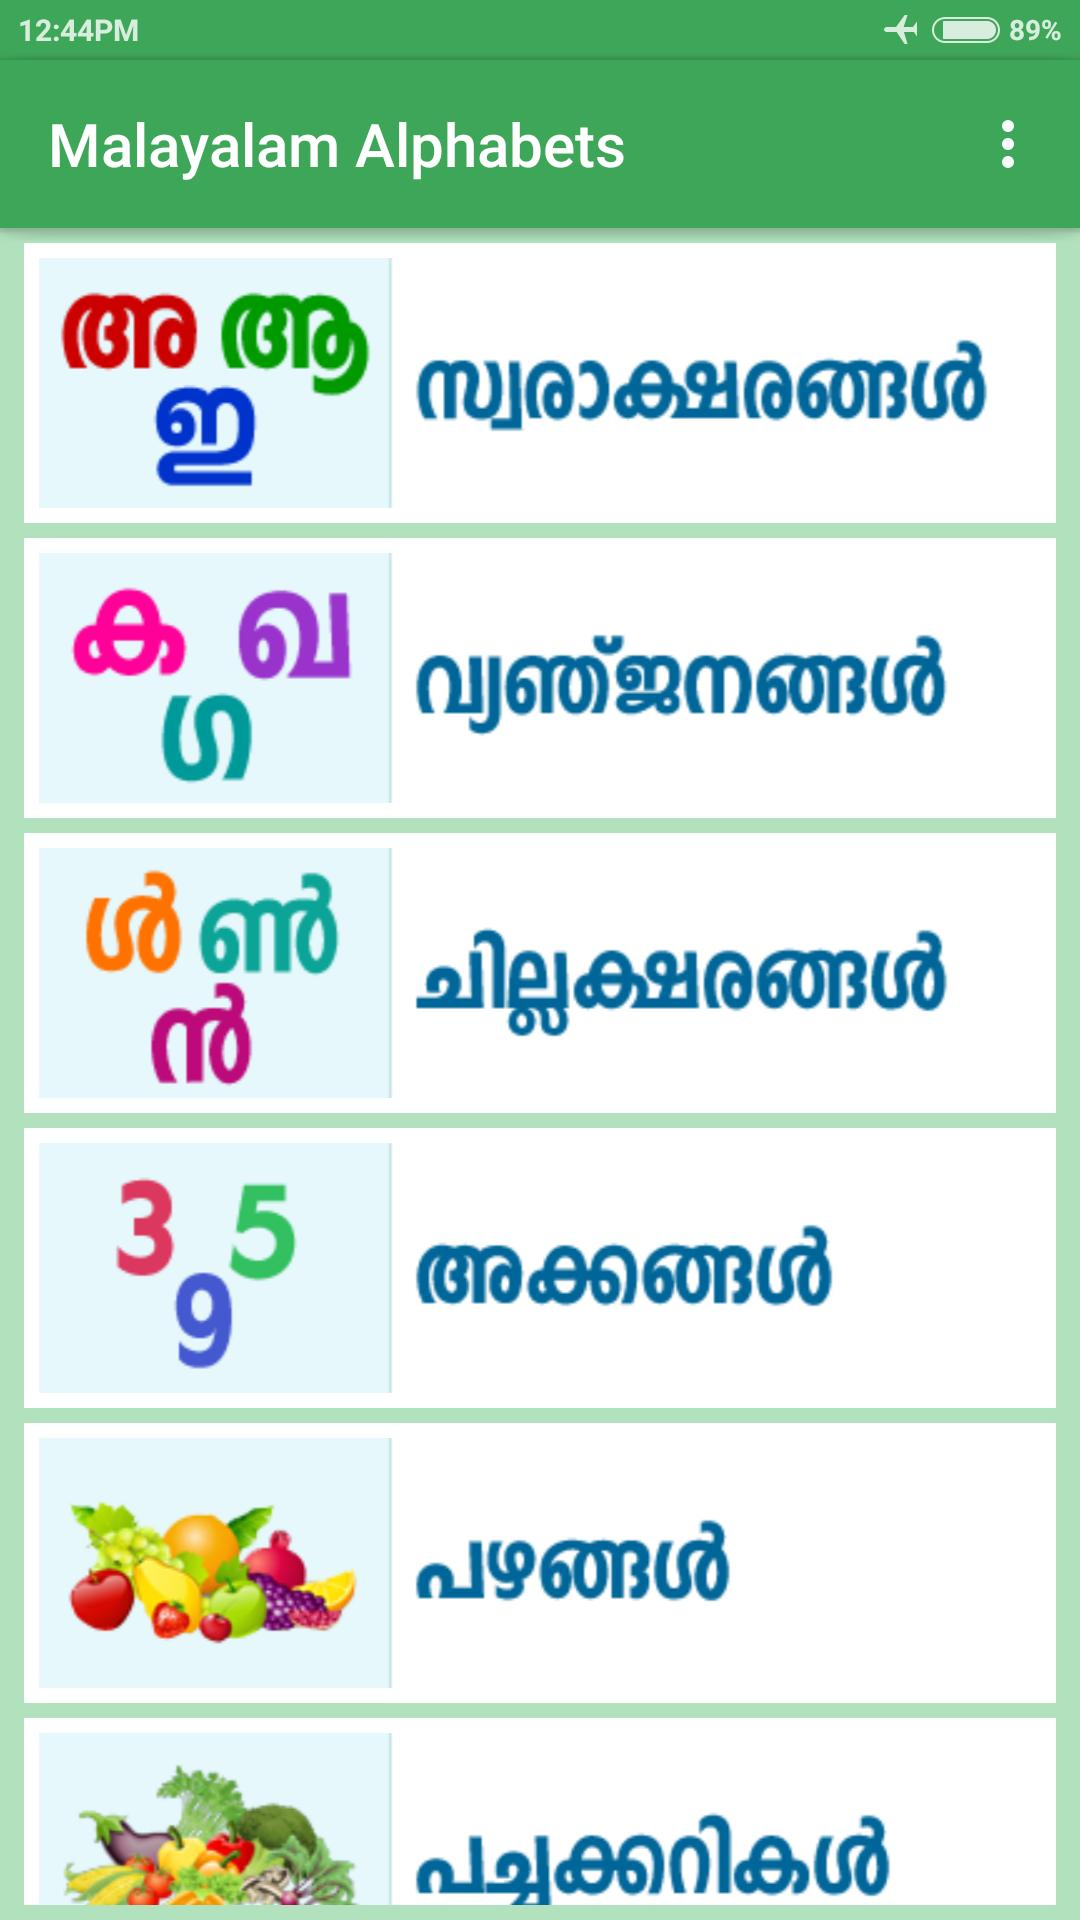 Malayalam Alphabets for Android - APK Download